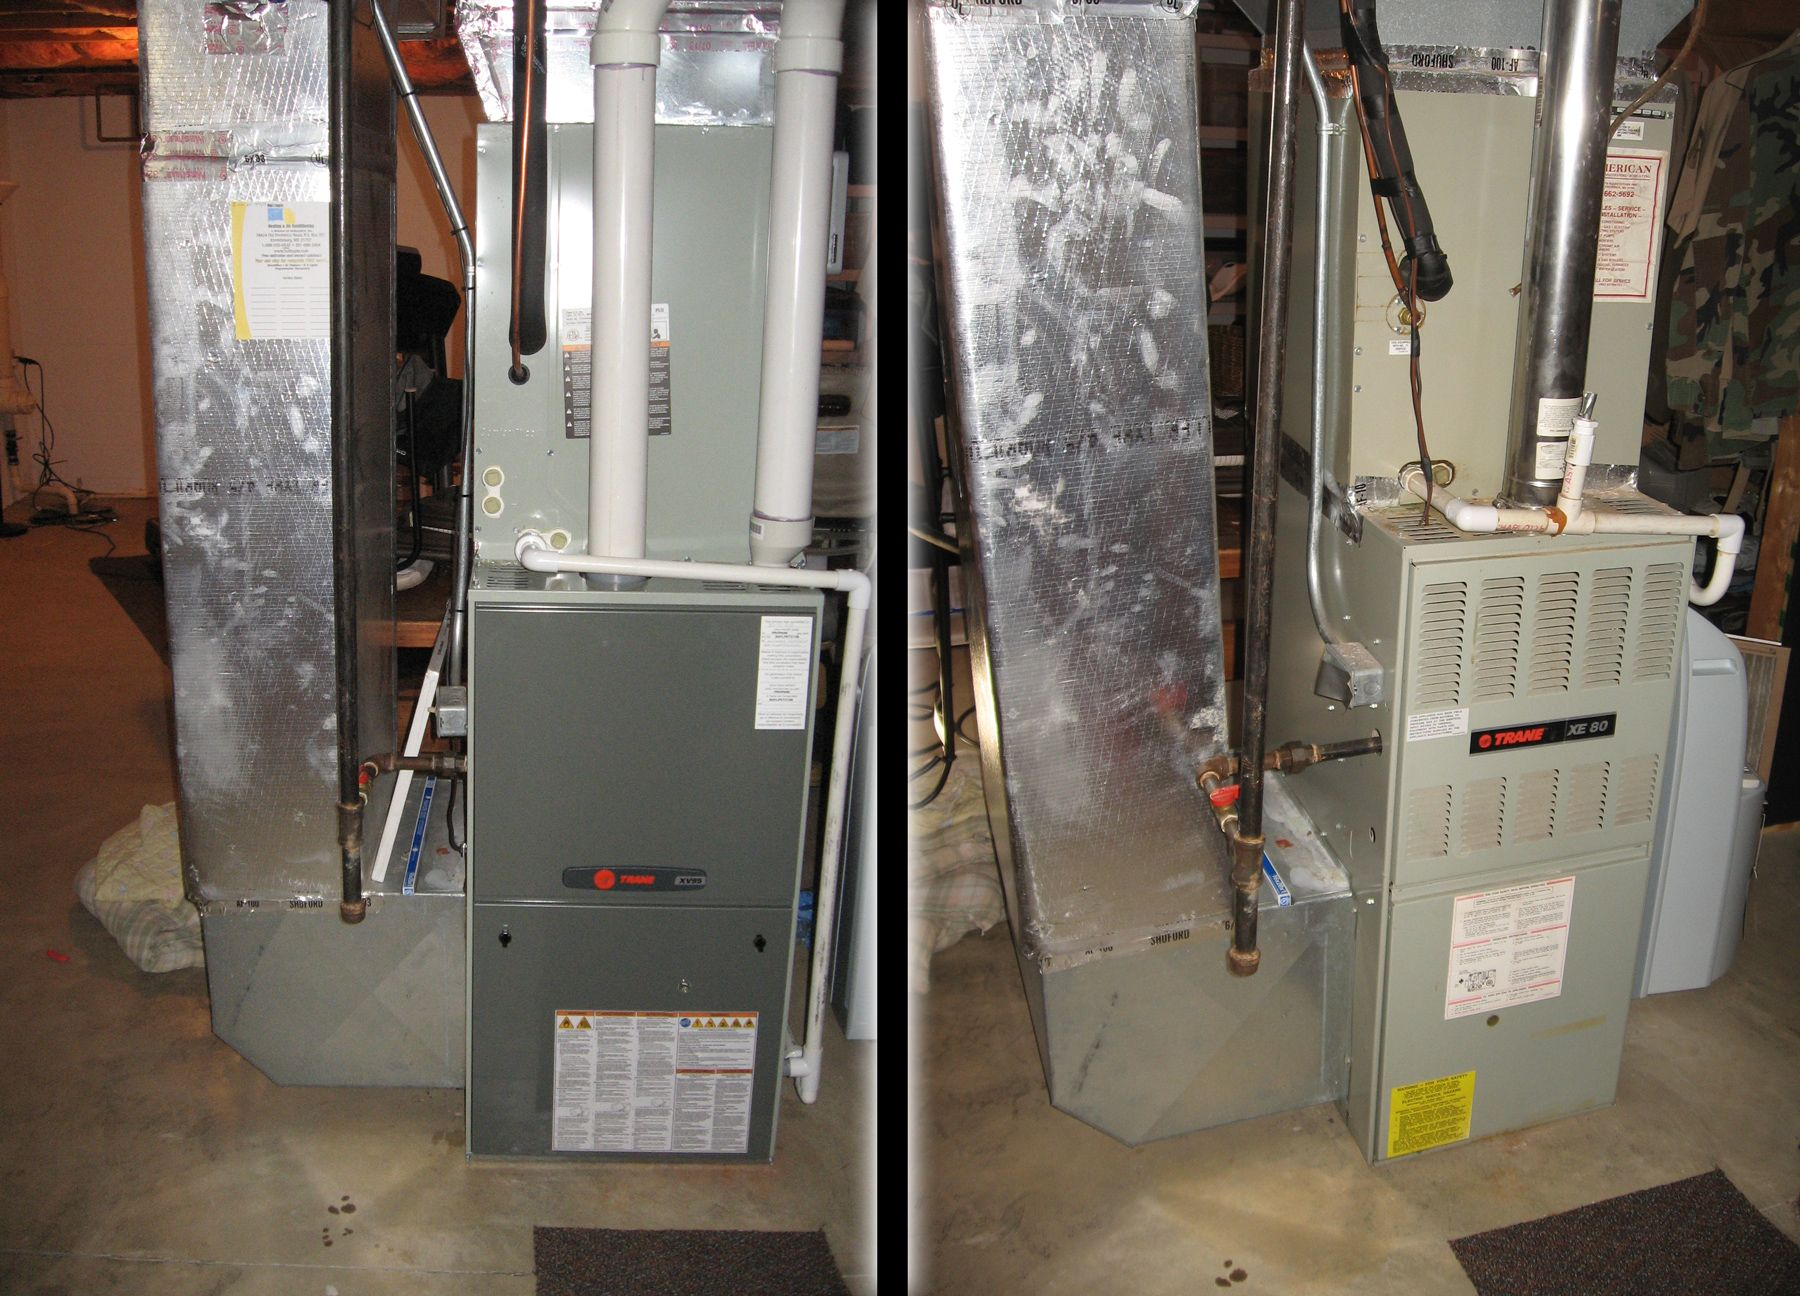 hight resolution of here s a trane xv95 furnace and an xl18i ac unit we installed for a customer holtzopleheatingandairconditioning beforeandafter